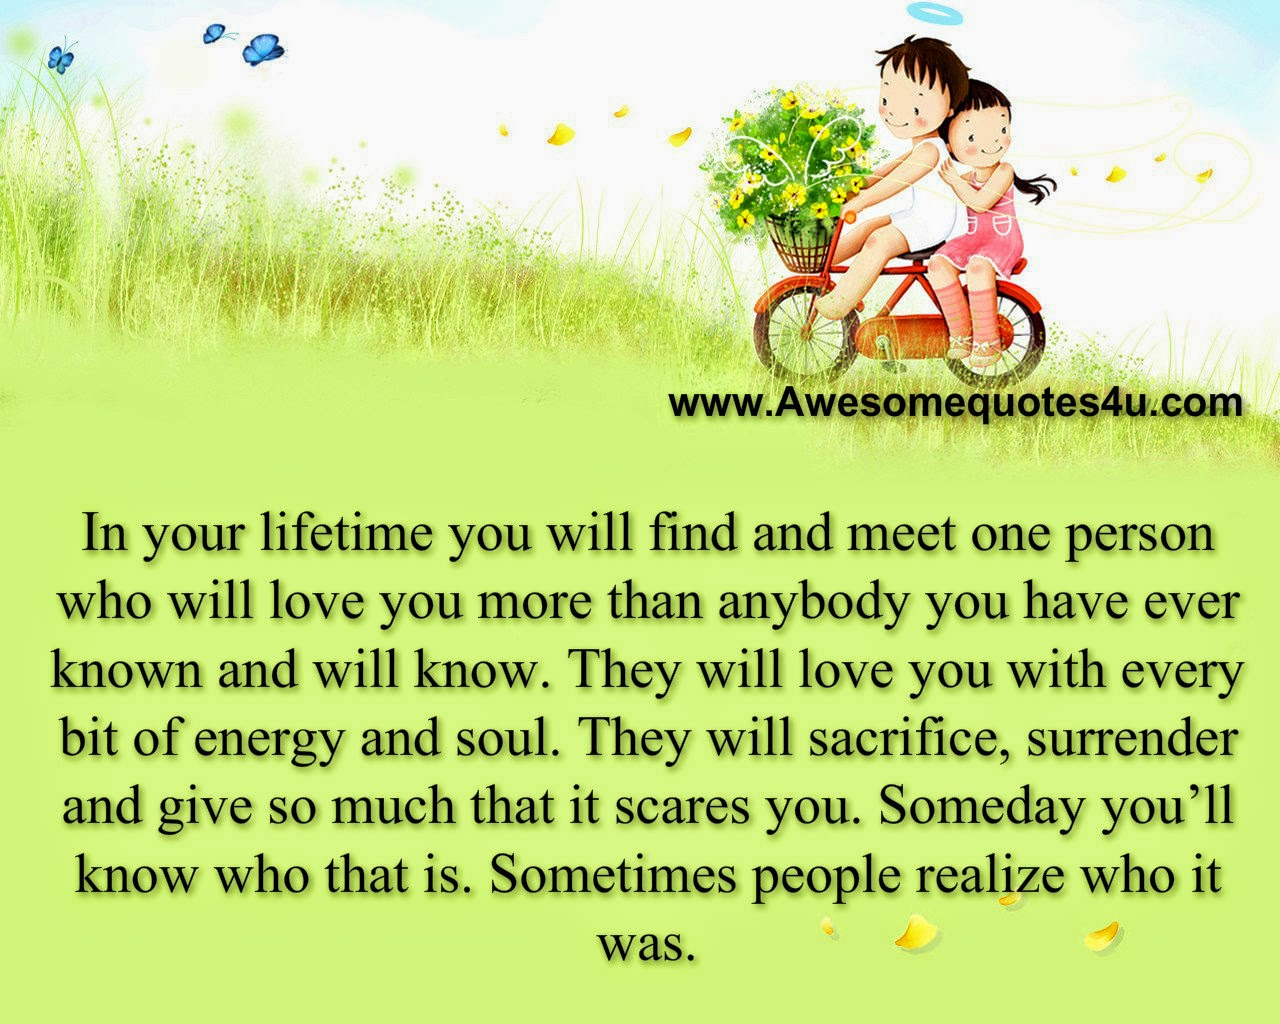 Awesome Quotes: In Your Lifetime You Will Find And Meet